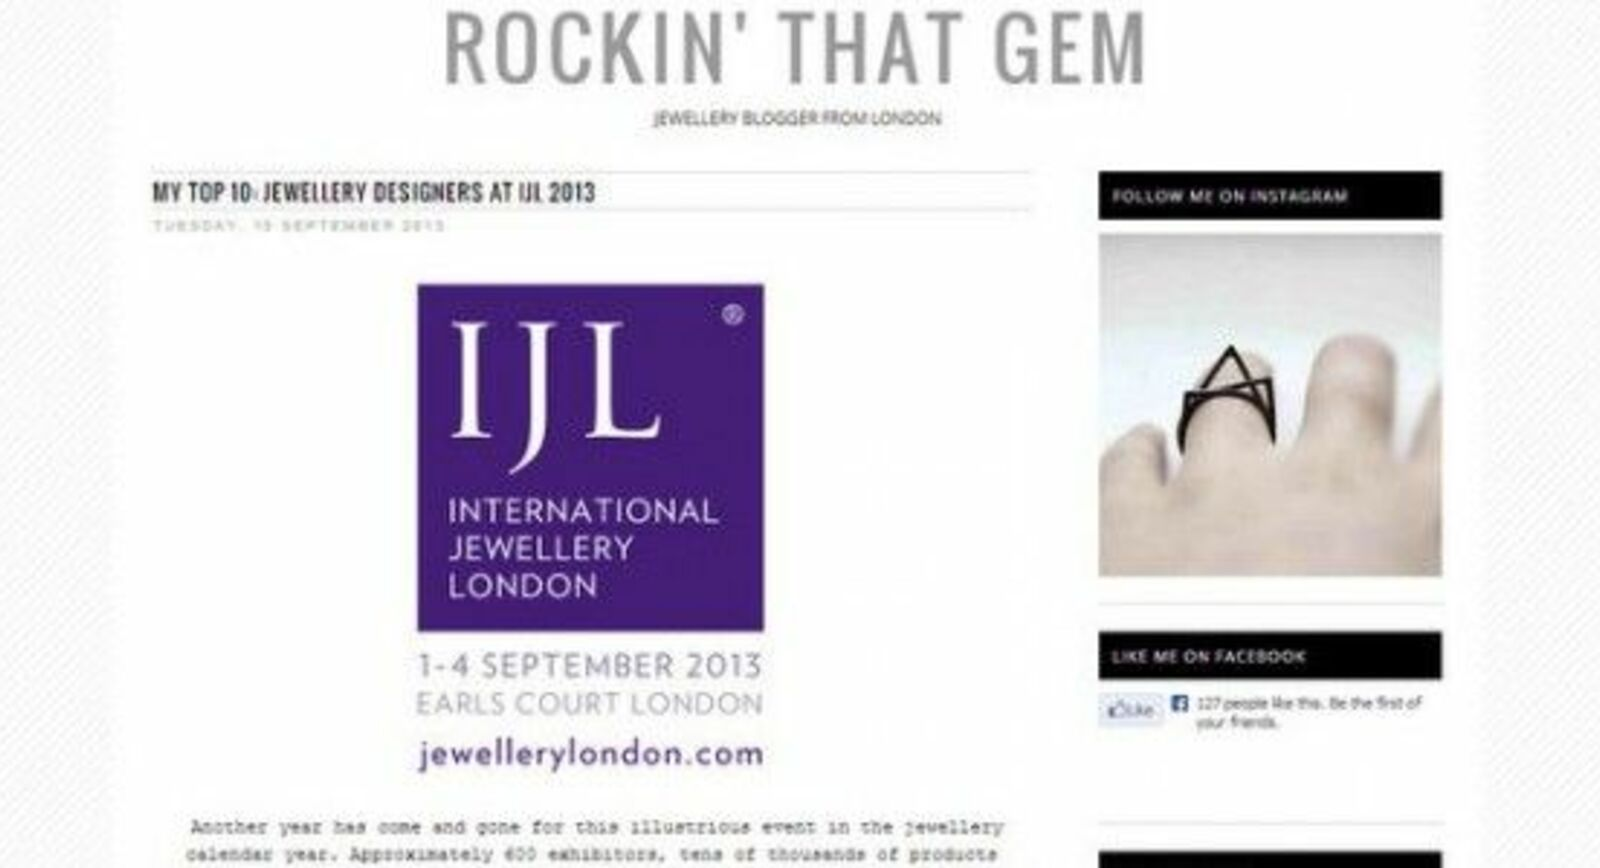 Rockin' That Gem: Top 10 Emerging Jewellery Designers at IJL2013